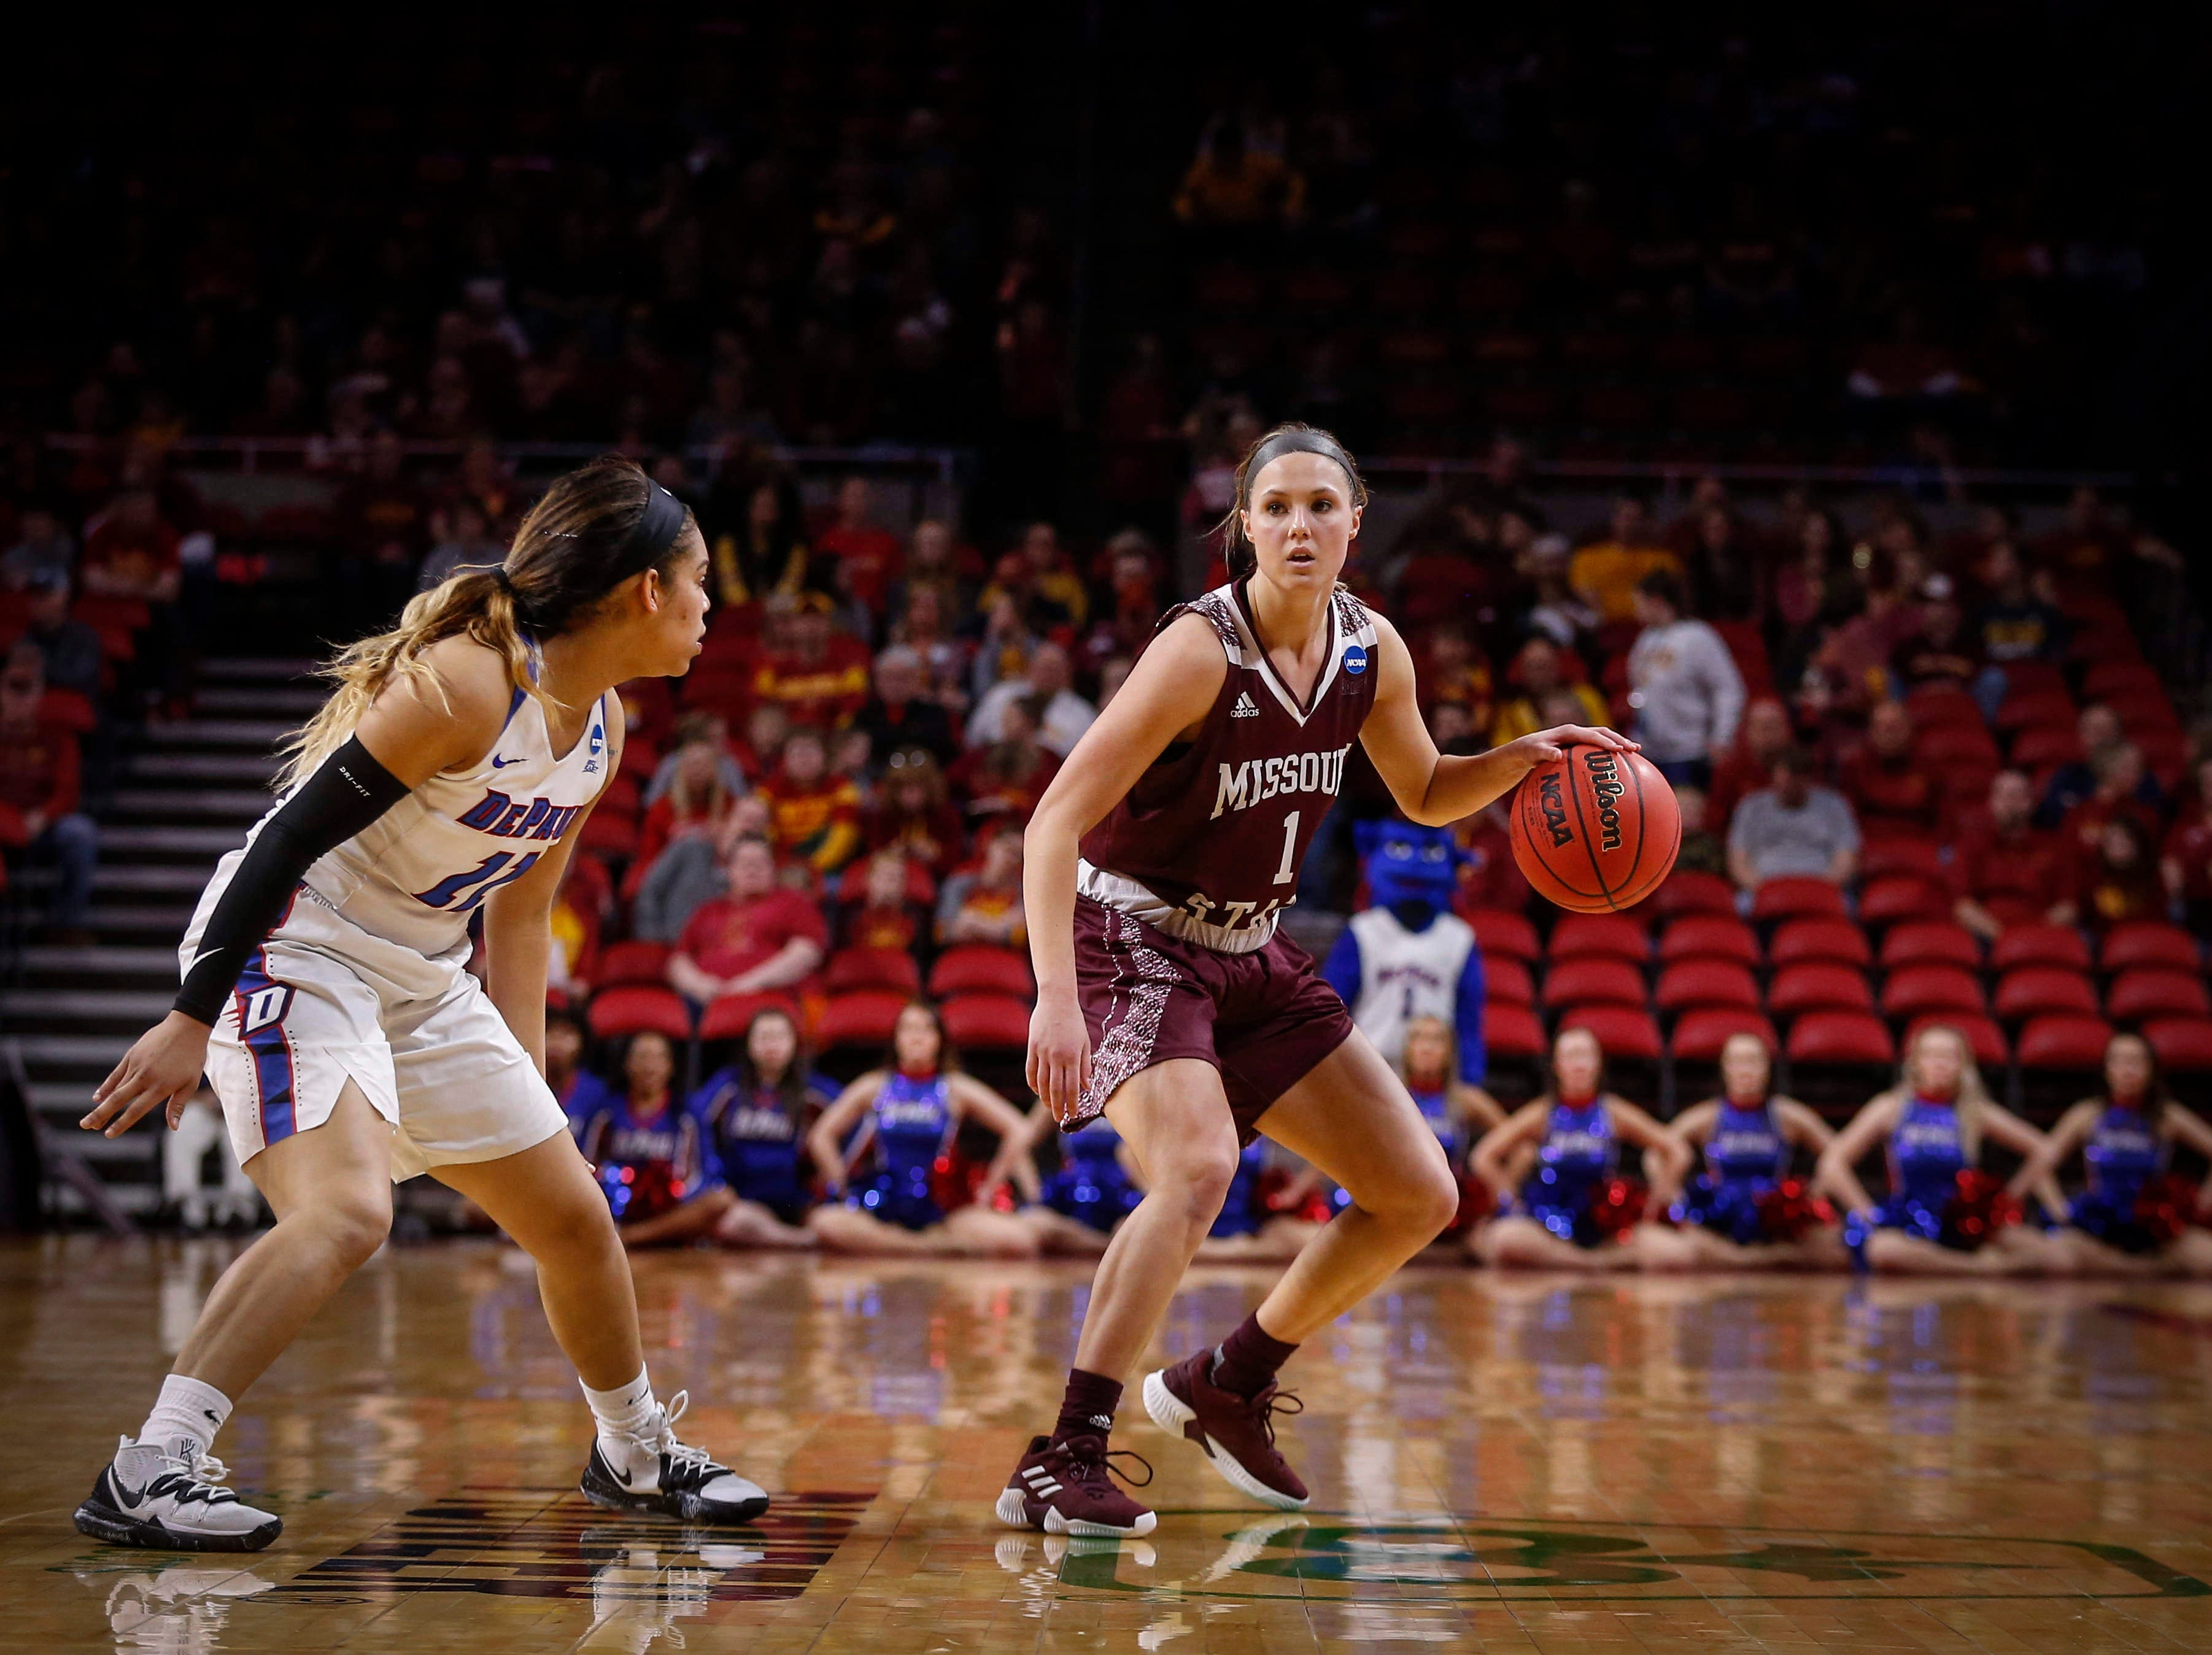 Missouri State senior Danielle Gitzen moves the ball upcourt against DePaul on Saturday, March 23, 2019, at Hilton Coliseum in Ames.